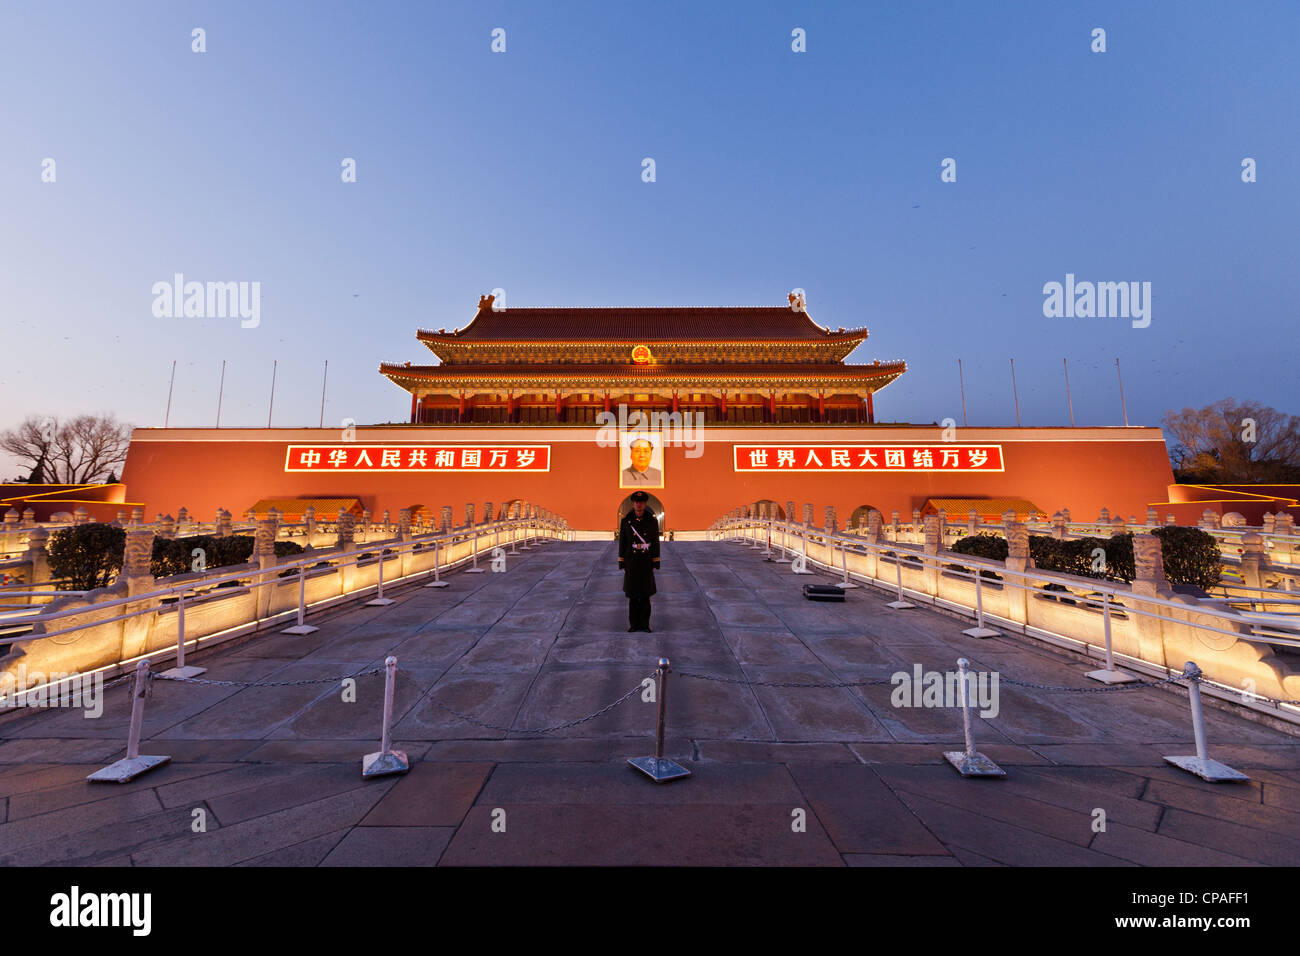 Tha Tiananmen Gate, the Gate of Heavenly Peace, Forbidden City, Beijing, China - Stock Image